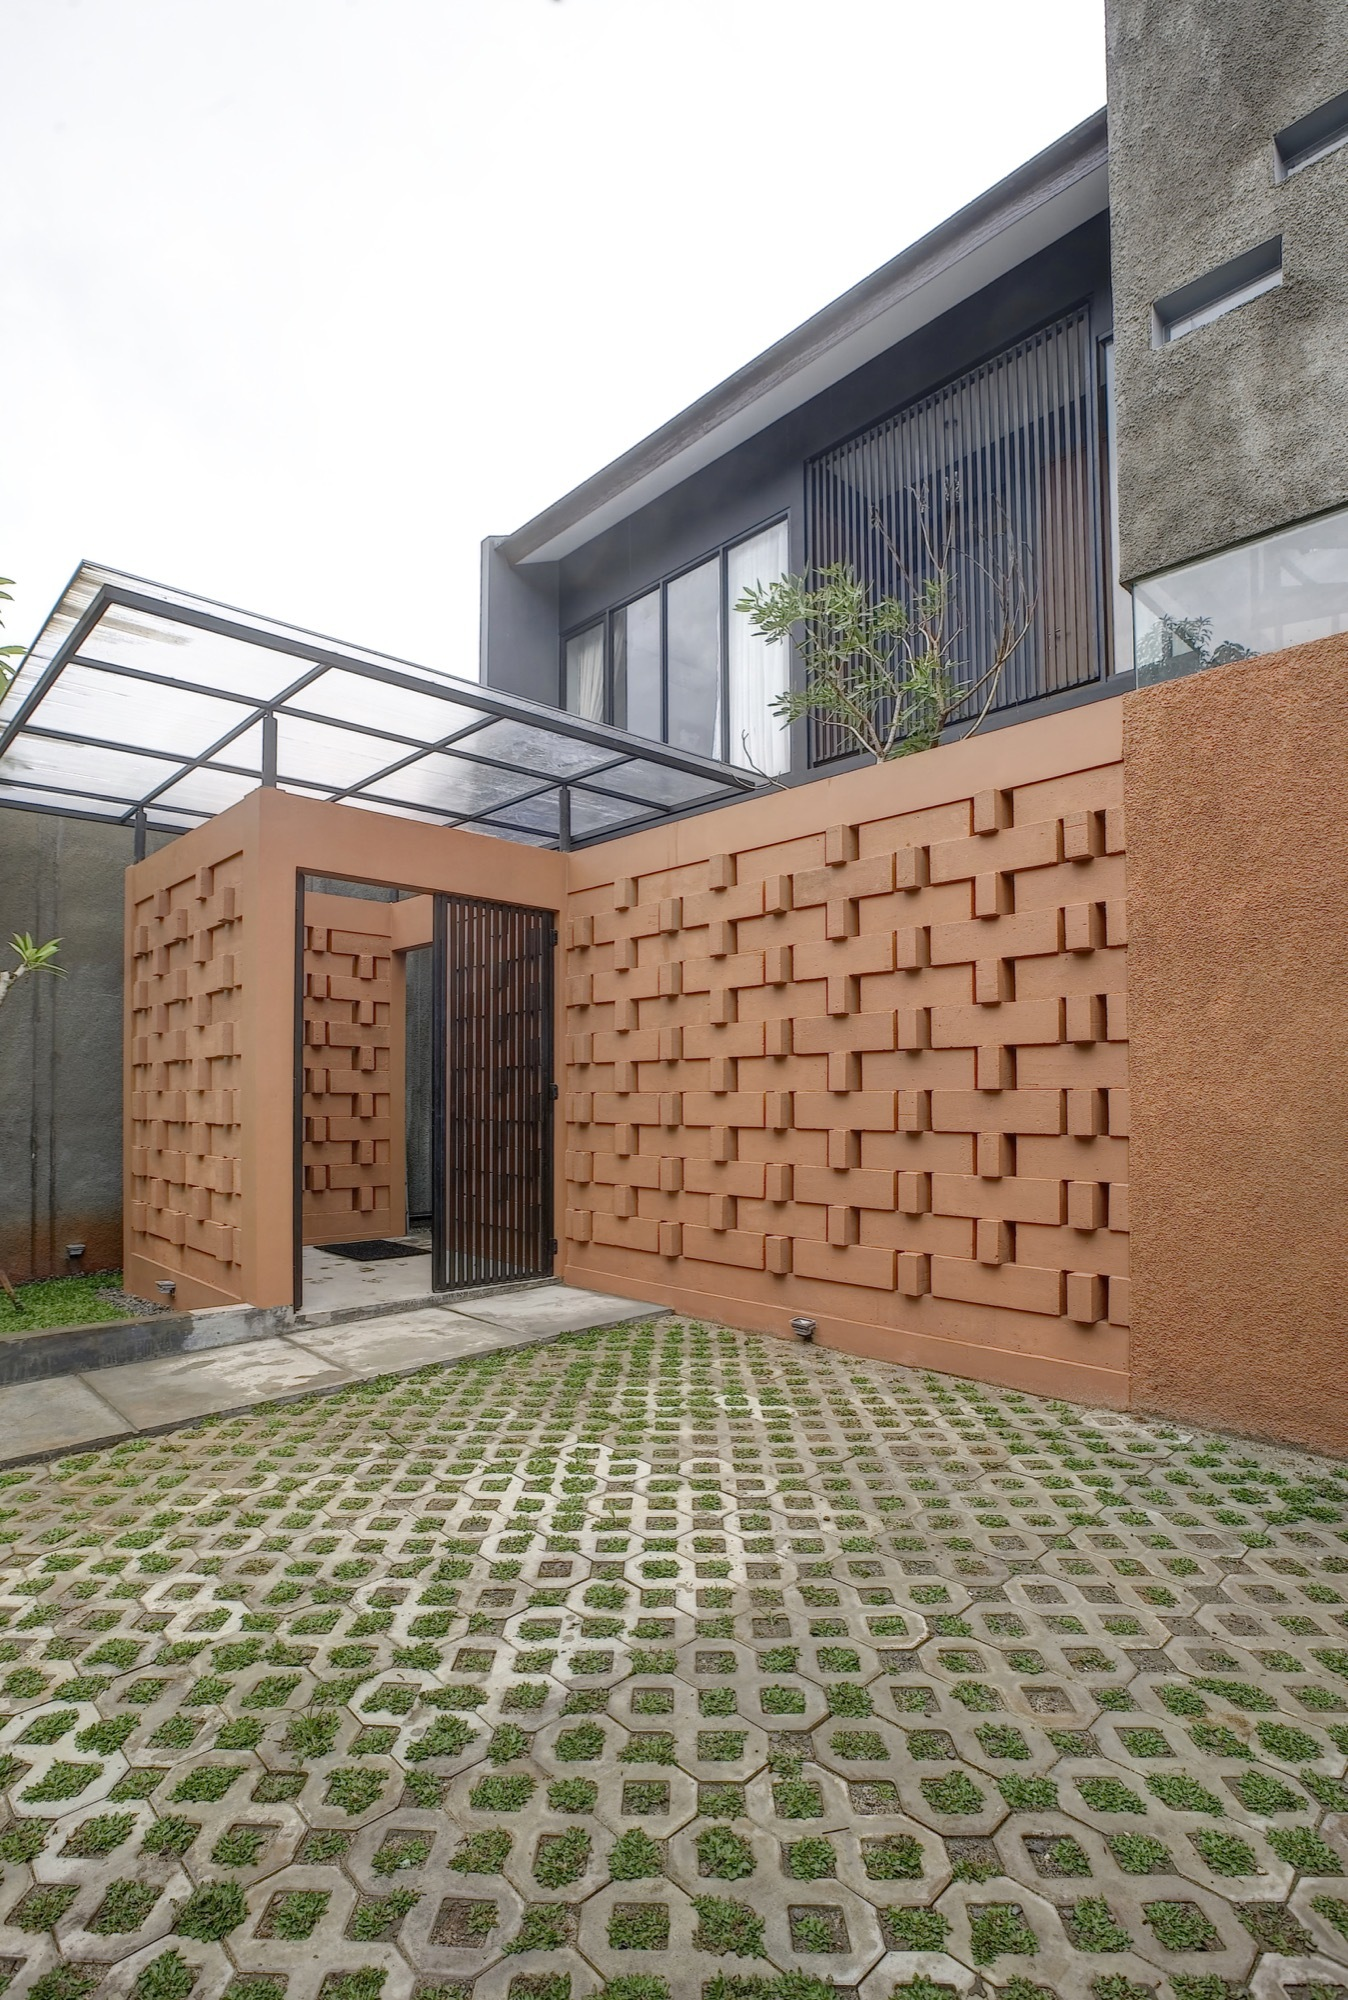 Architecture Of A Mom 15 Easy Diy Gift Ideas: Istakagrha / RAW Architecture